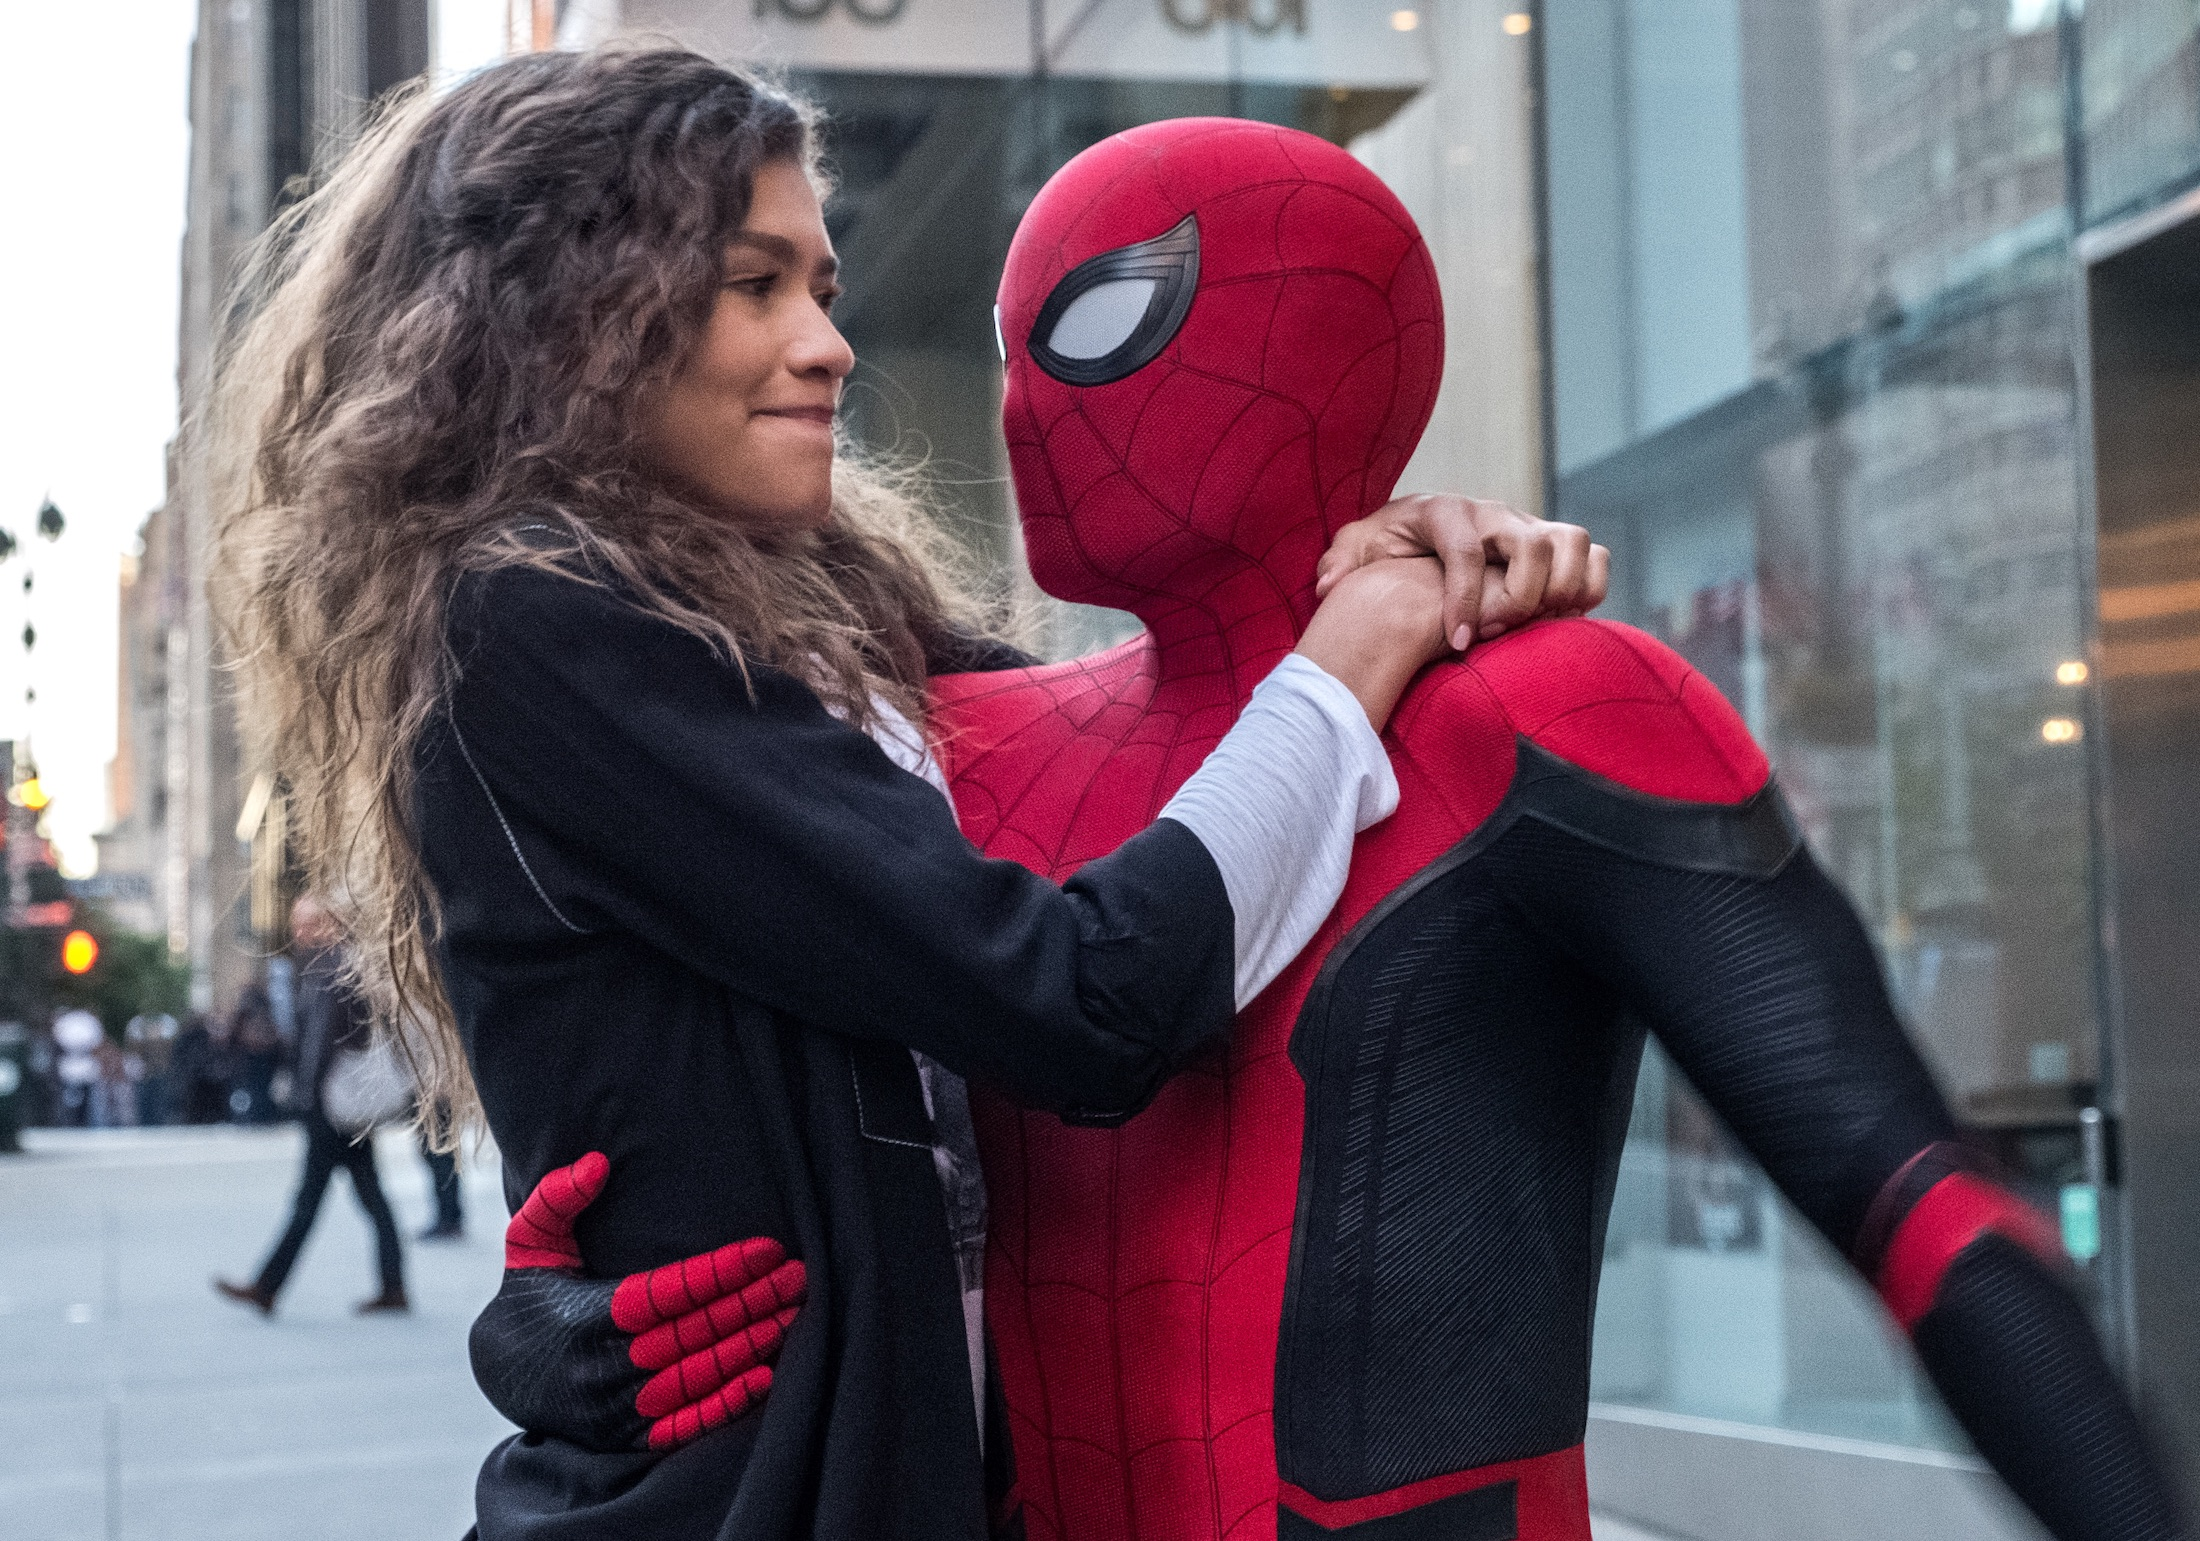 Spider-Man: Far From Home has the most consequential post-credits scenes since Iron Man